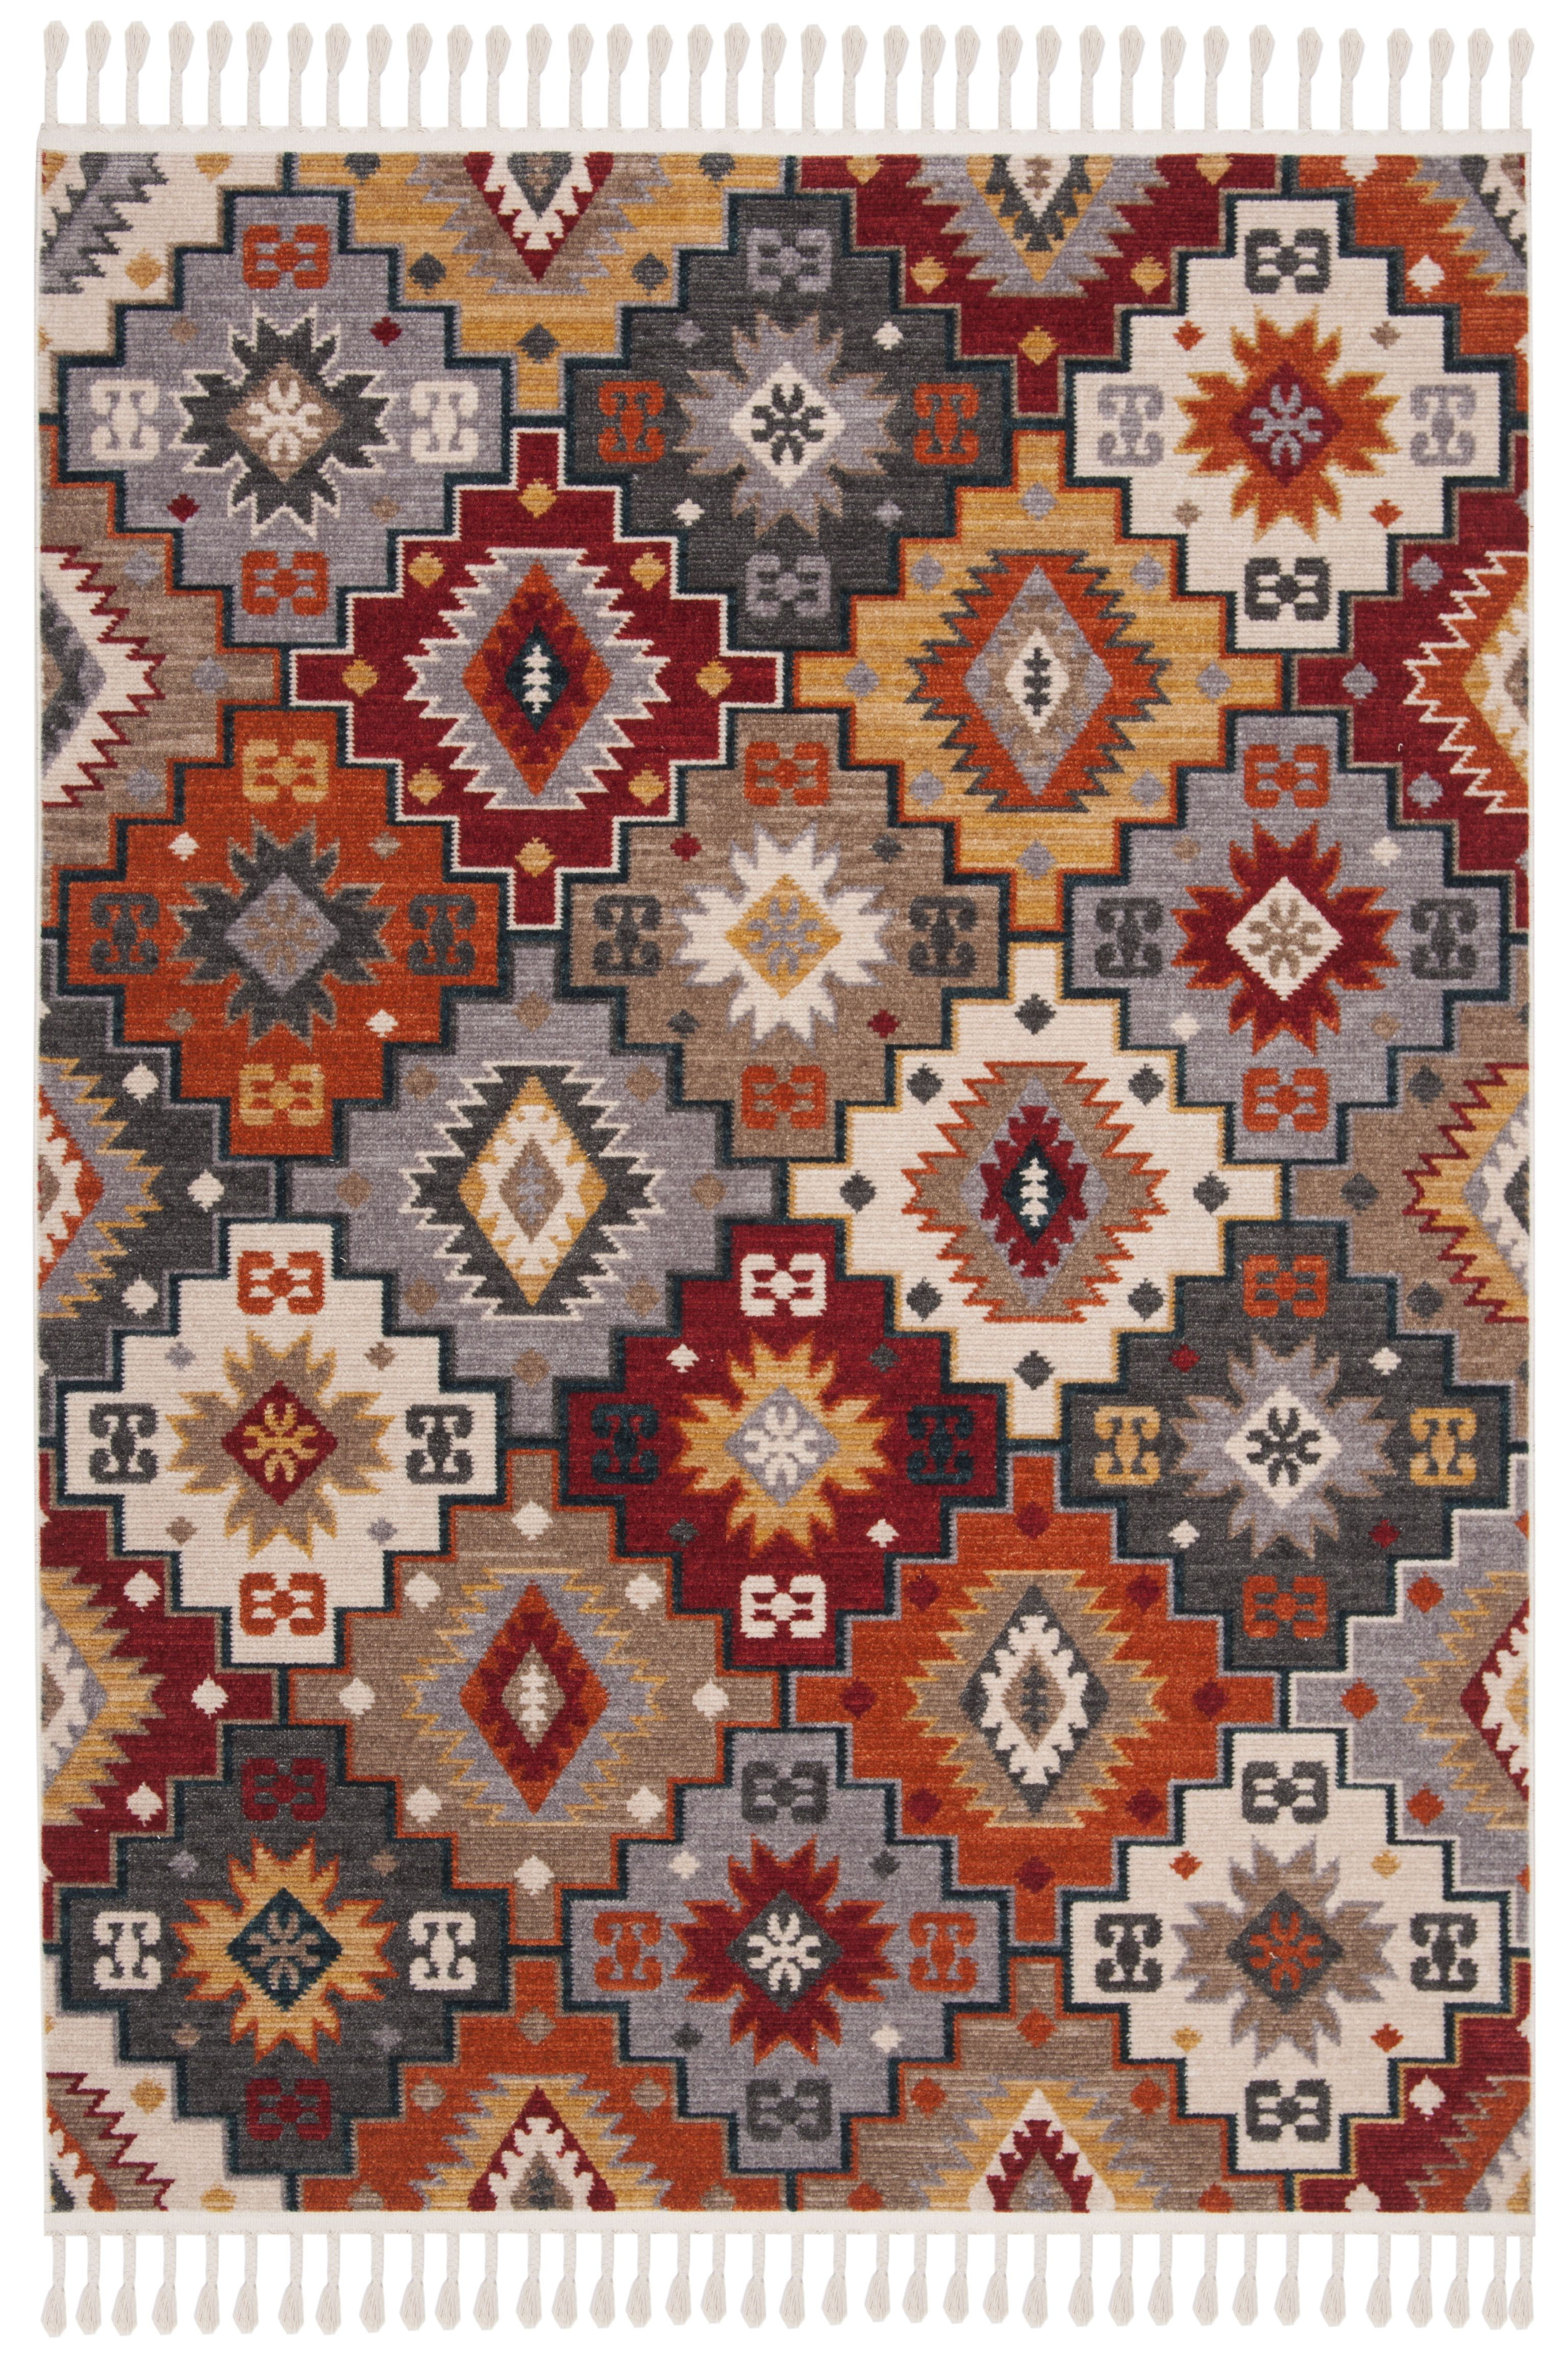 Farmhouse Rug Grey Red 5 0 X 7 3 In 2020 Farmhouse Rugs Rugs On Carpet Classic Rugs